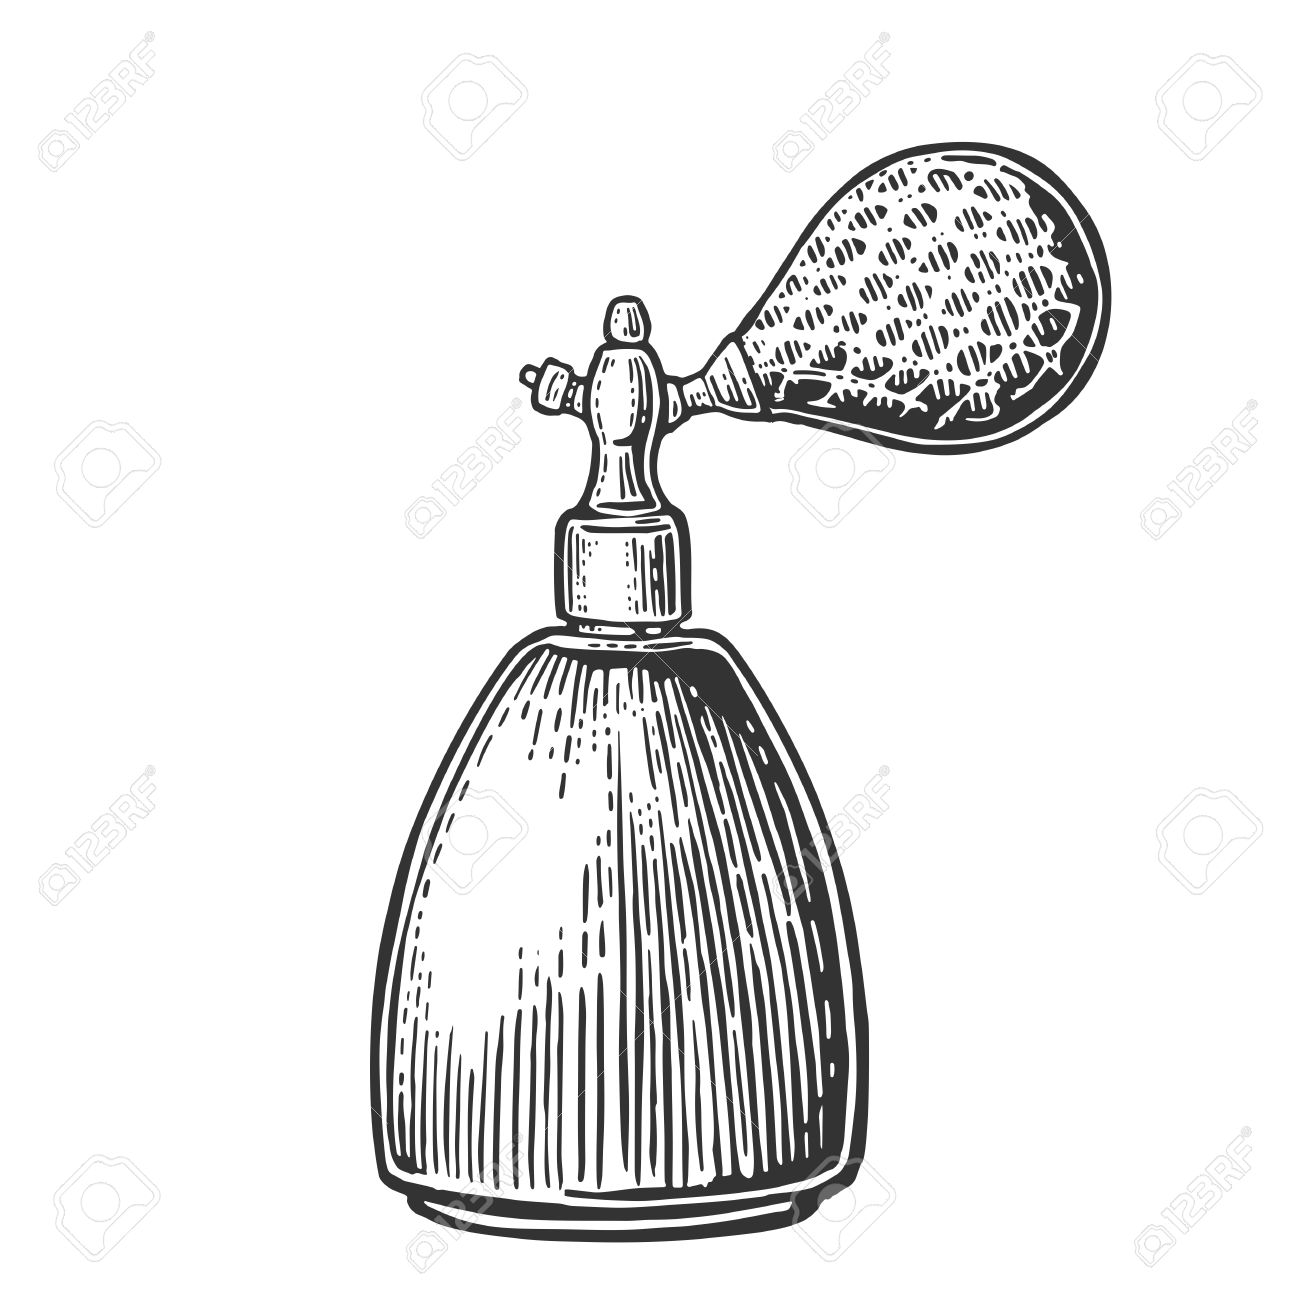 Perfume clipart spray mist. Bottle drawing at getdrawings